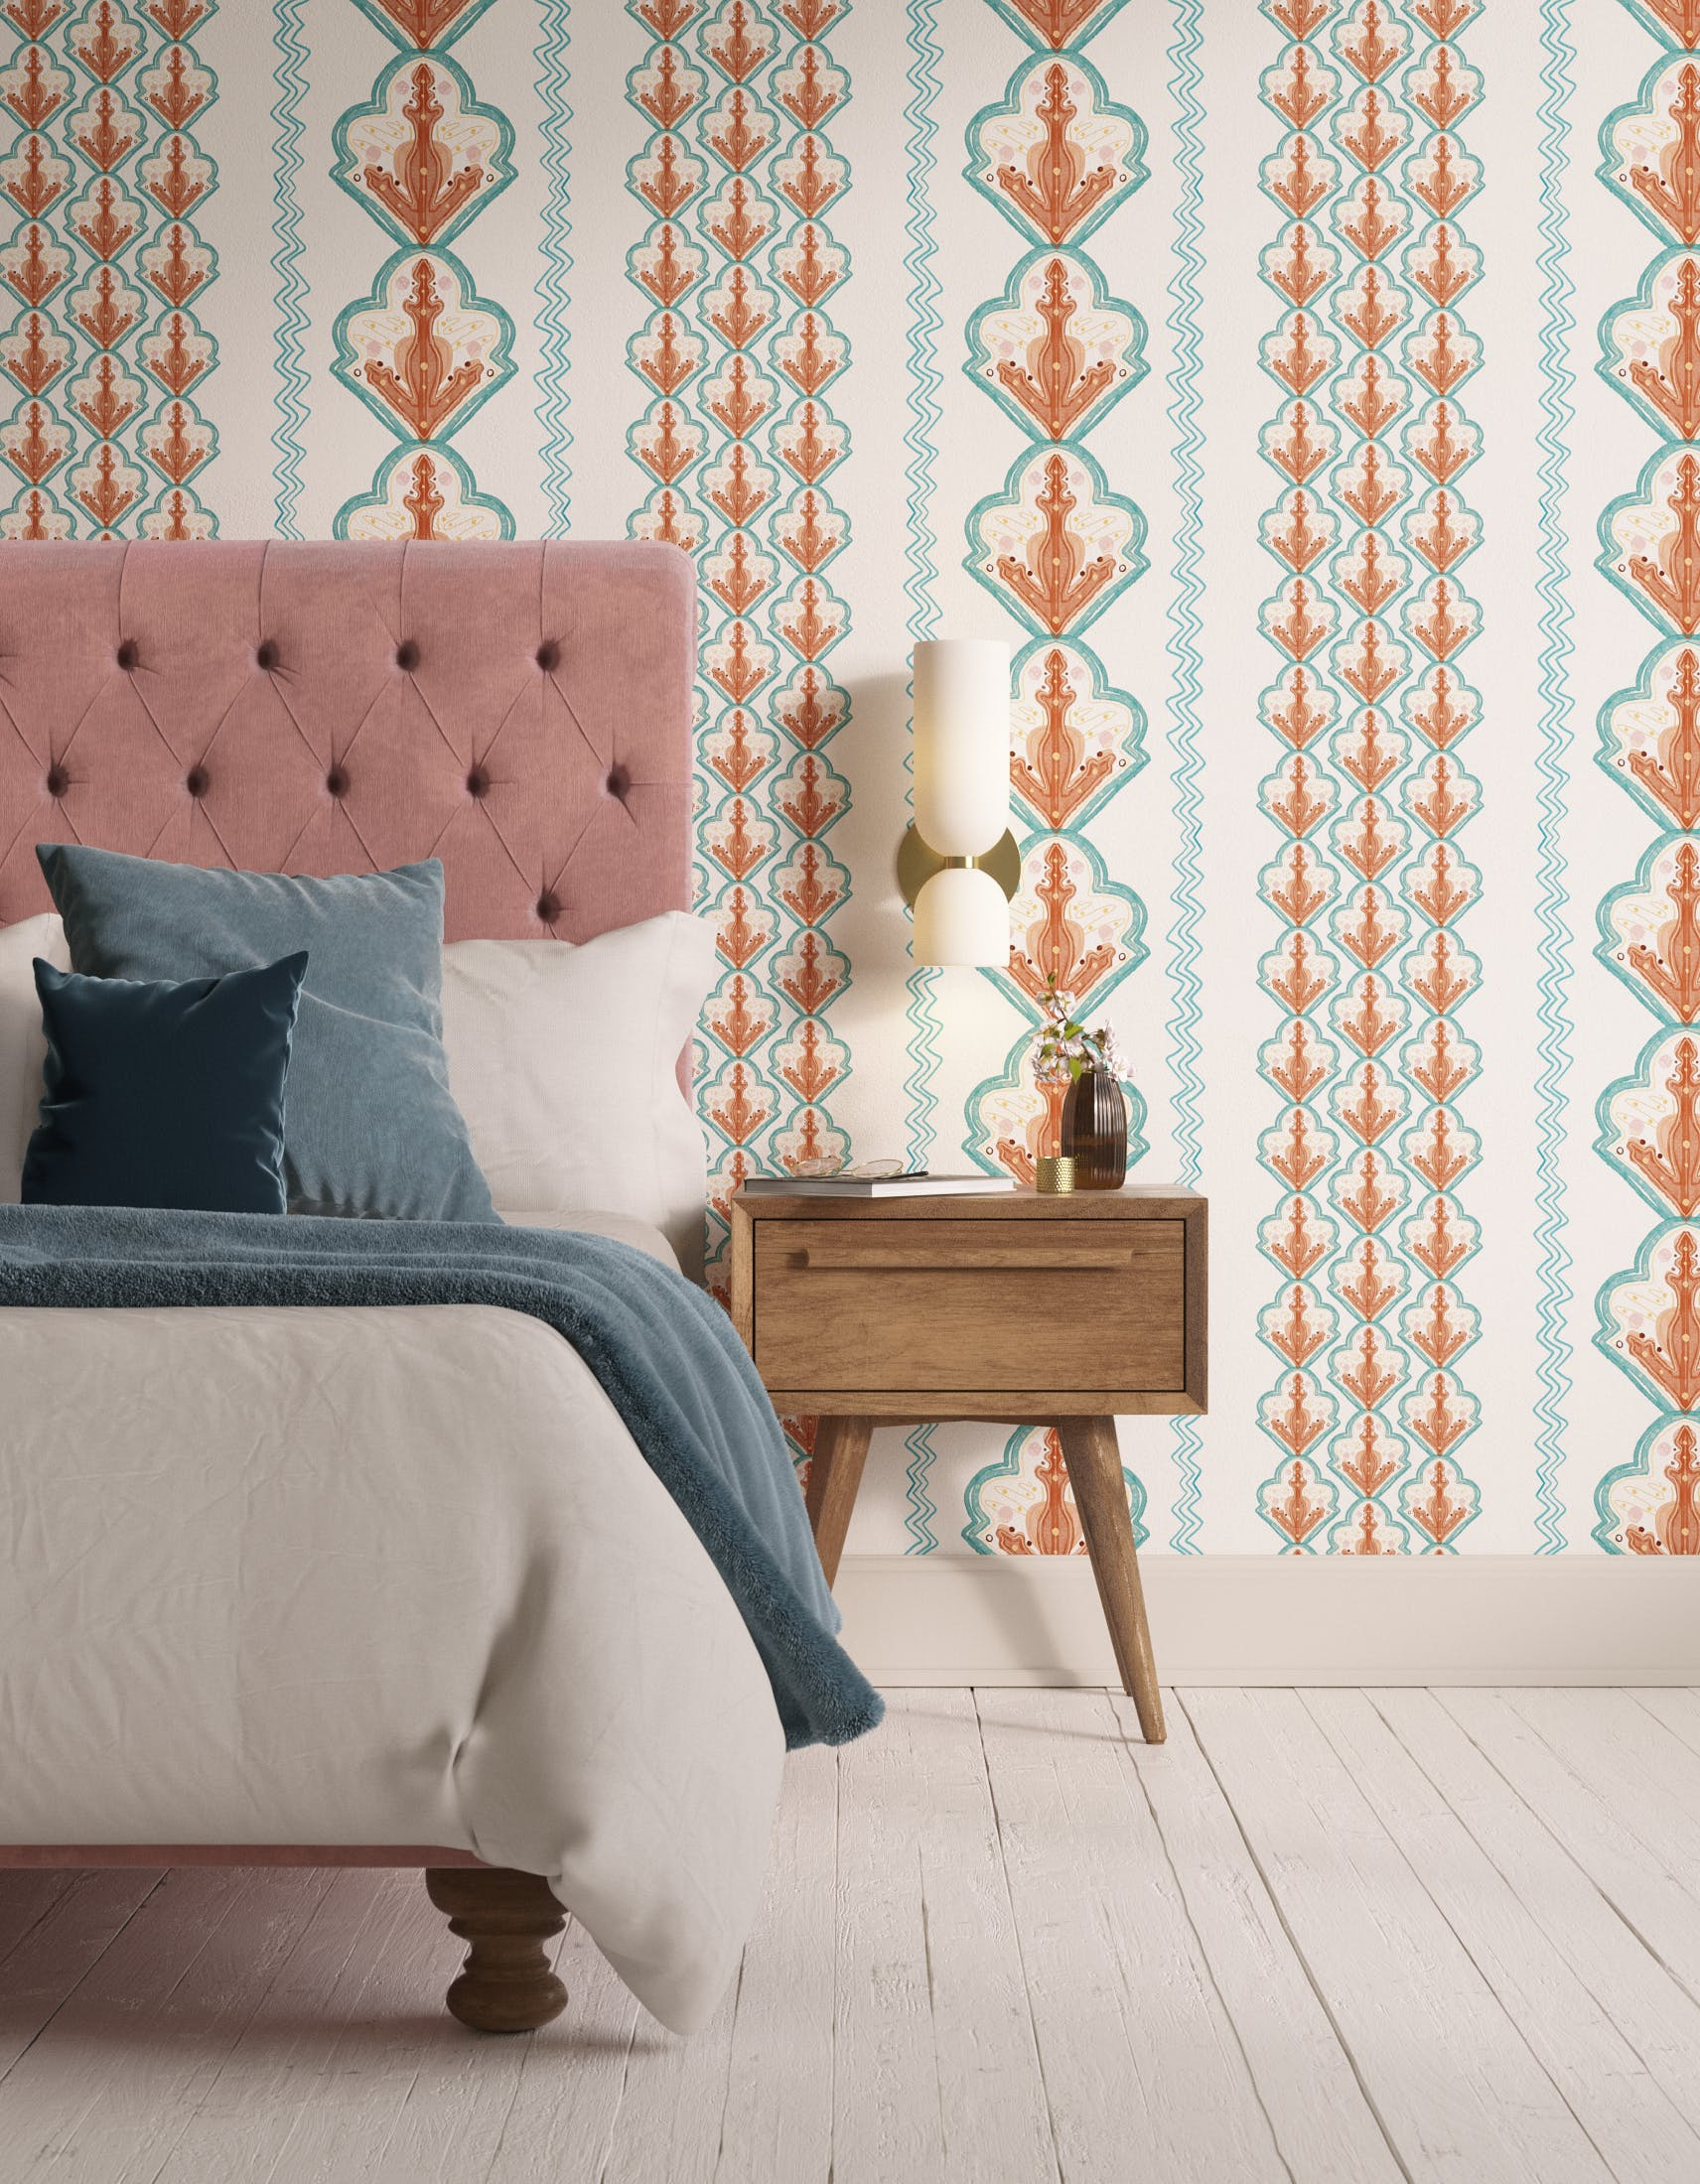 Bedroom decorated with Lick x Lottie McDowell Travelling Tiles 02 orange patterned mosaic wallpaper